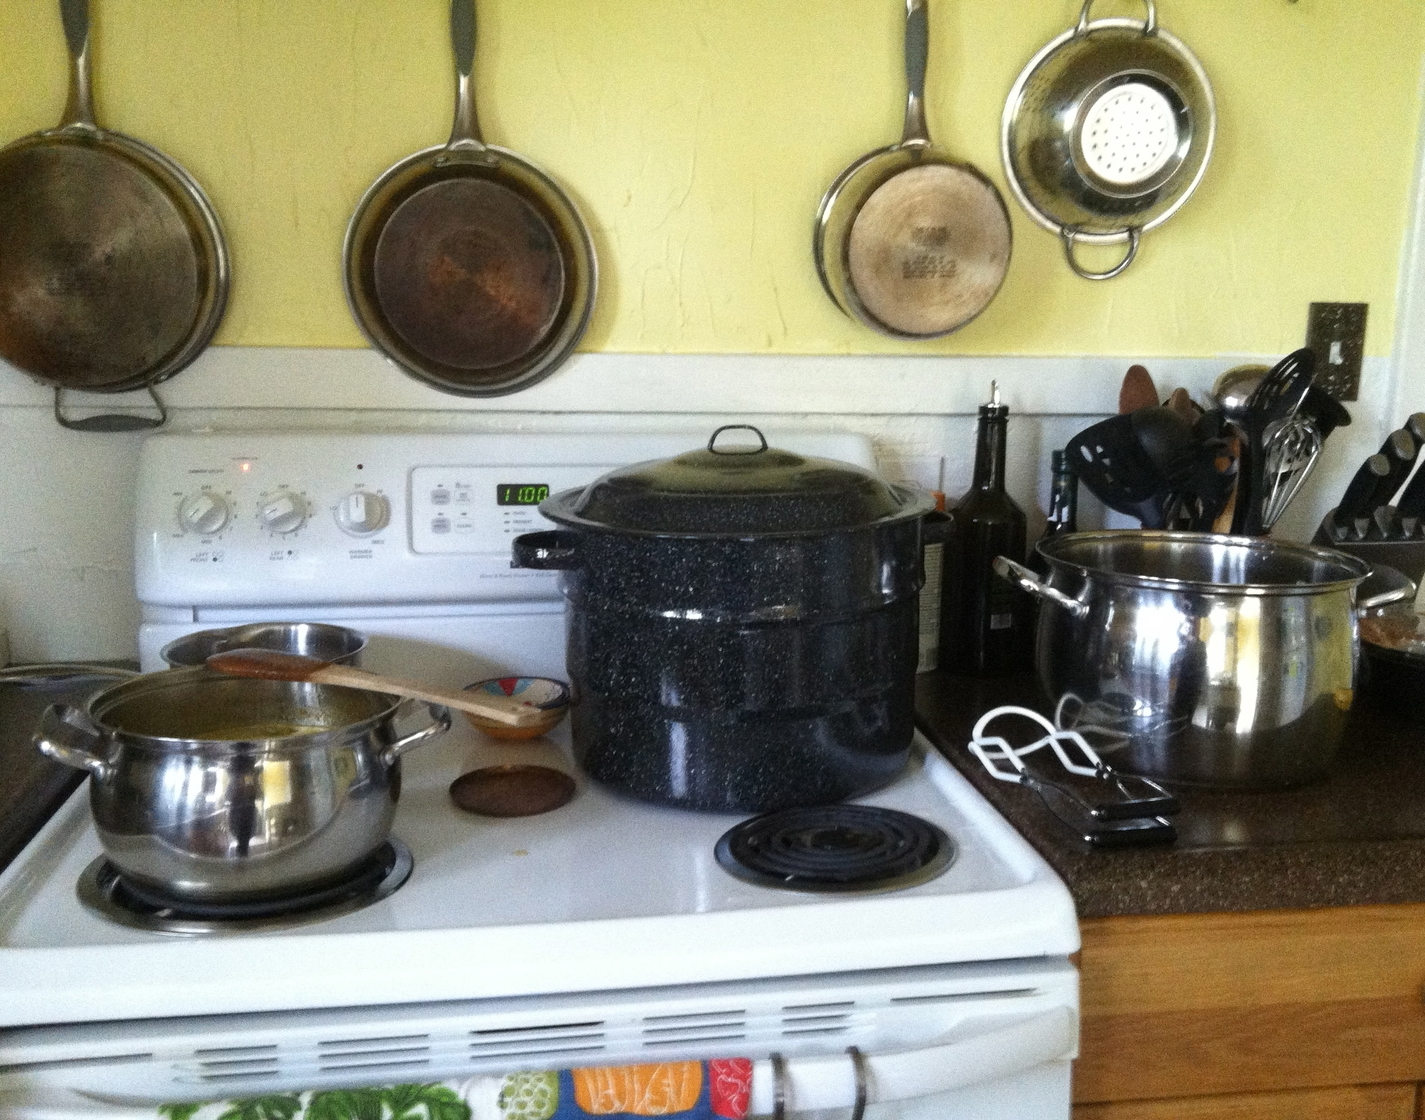 My home canning set-up: the recipe, water bath canner, jar lifter, and second pot for heating jars.